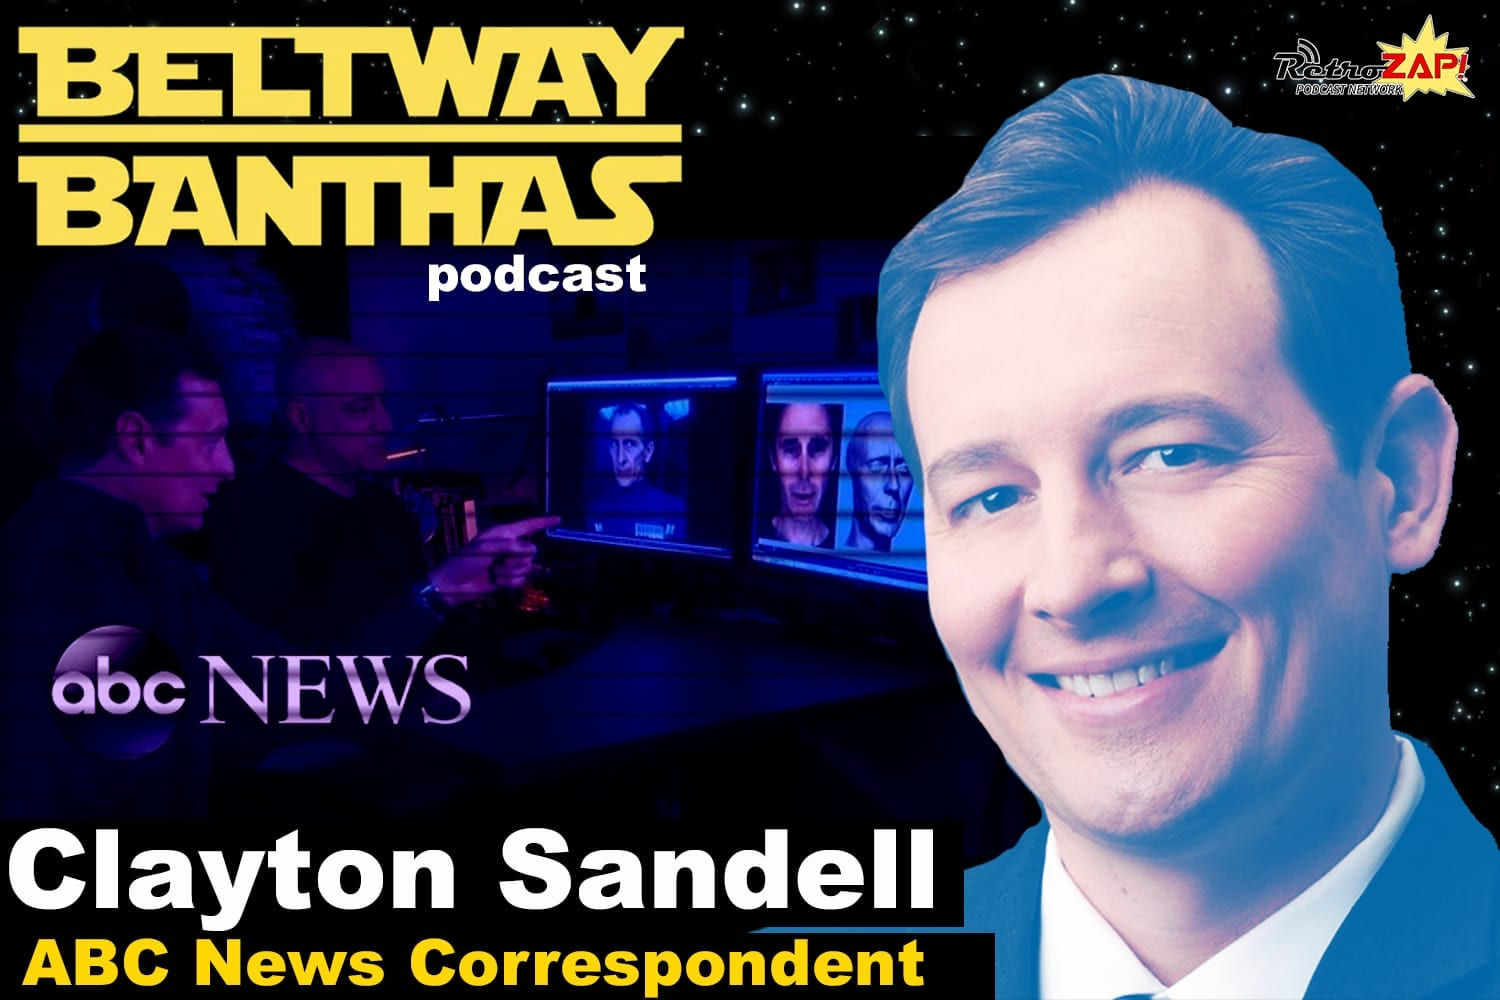 Beltway Banthas Interview: Clayton Sandell of ABC News